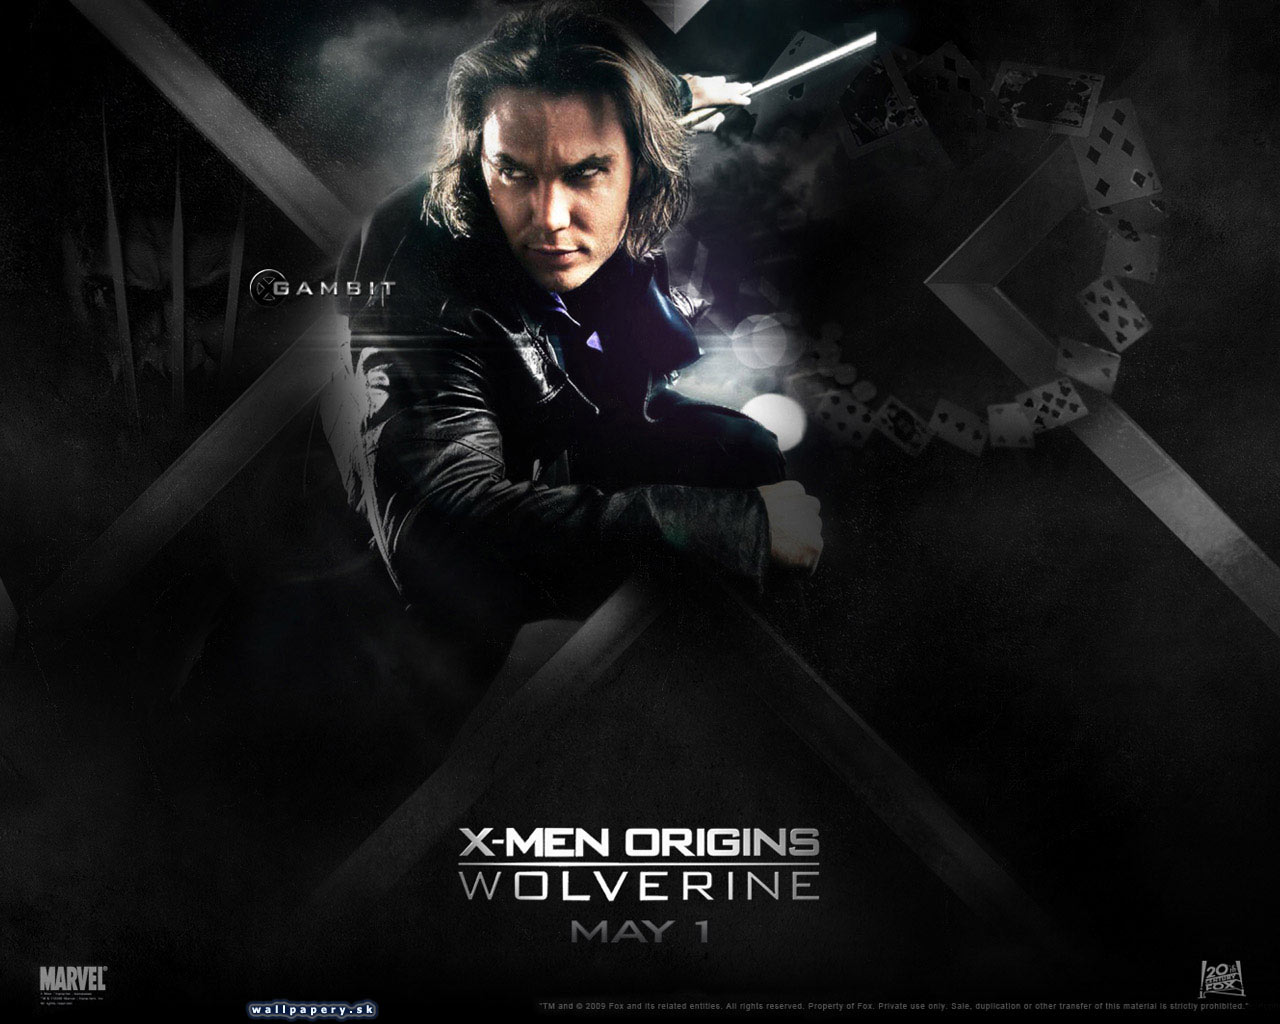 X-Men Origins: Wolverine - wallpaper 12